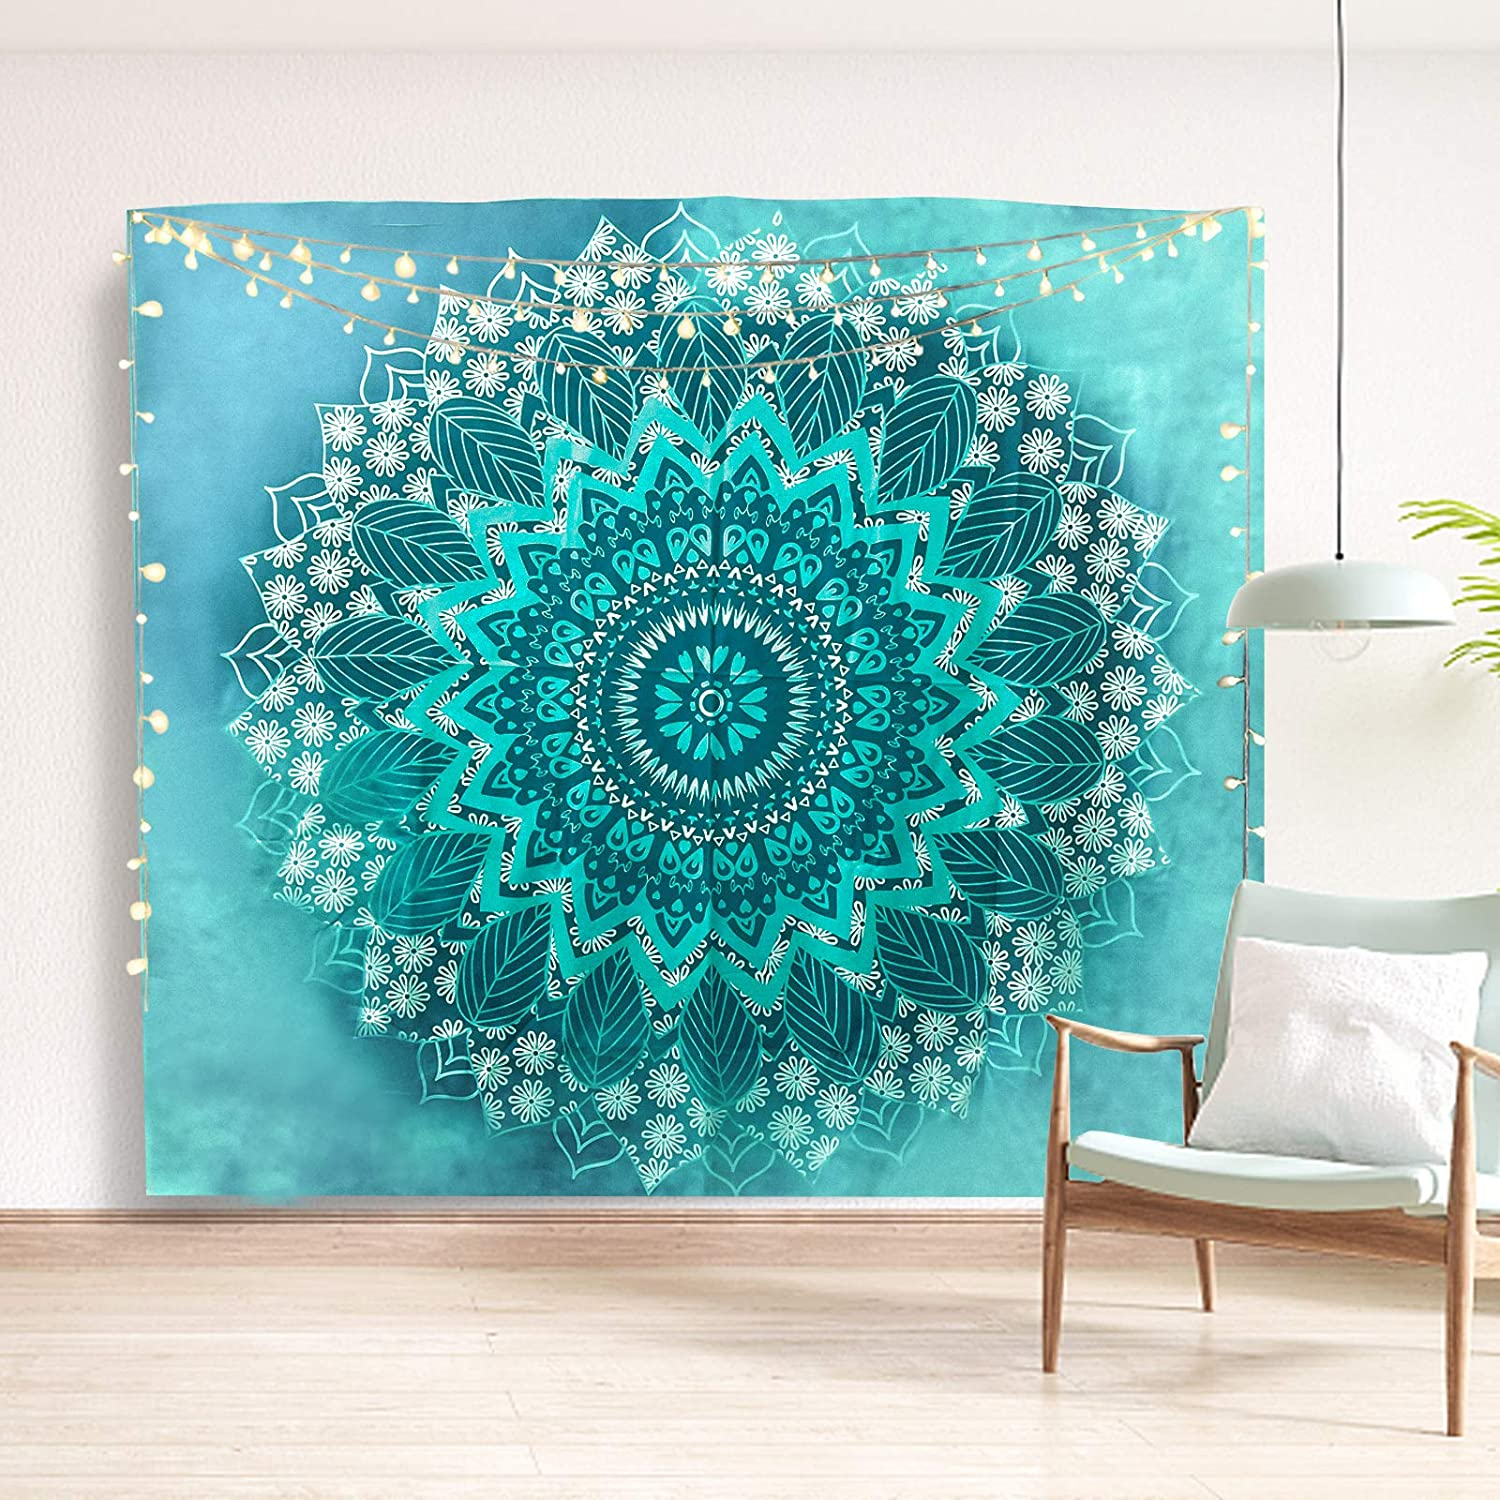 YTFSUCT Mandala Tapestry,Bohemian Hippie Tapestries Washable Psychedelic Teal Peacock Tapestry Wall Hanging Decor for Bedroom Living Room Dorm (51.2 x 59.1 inches)